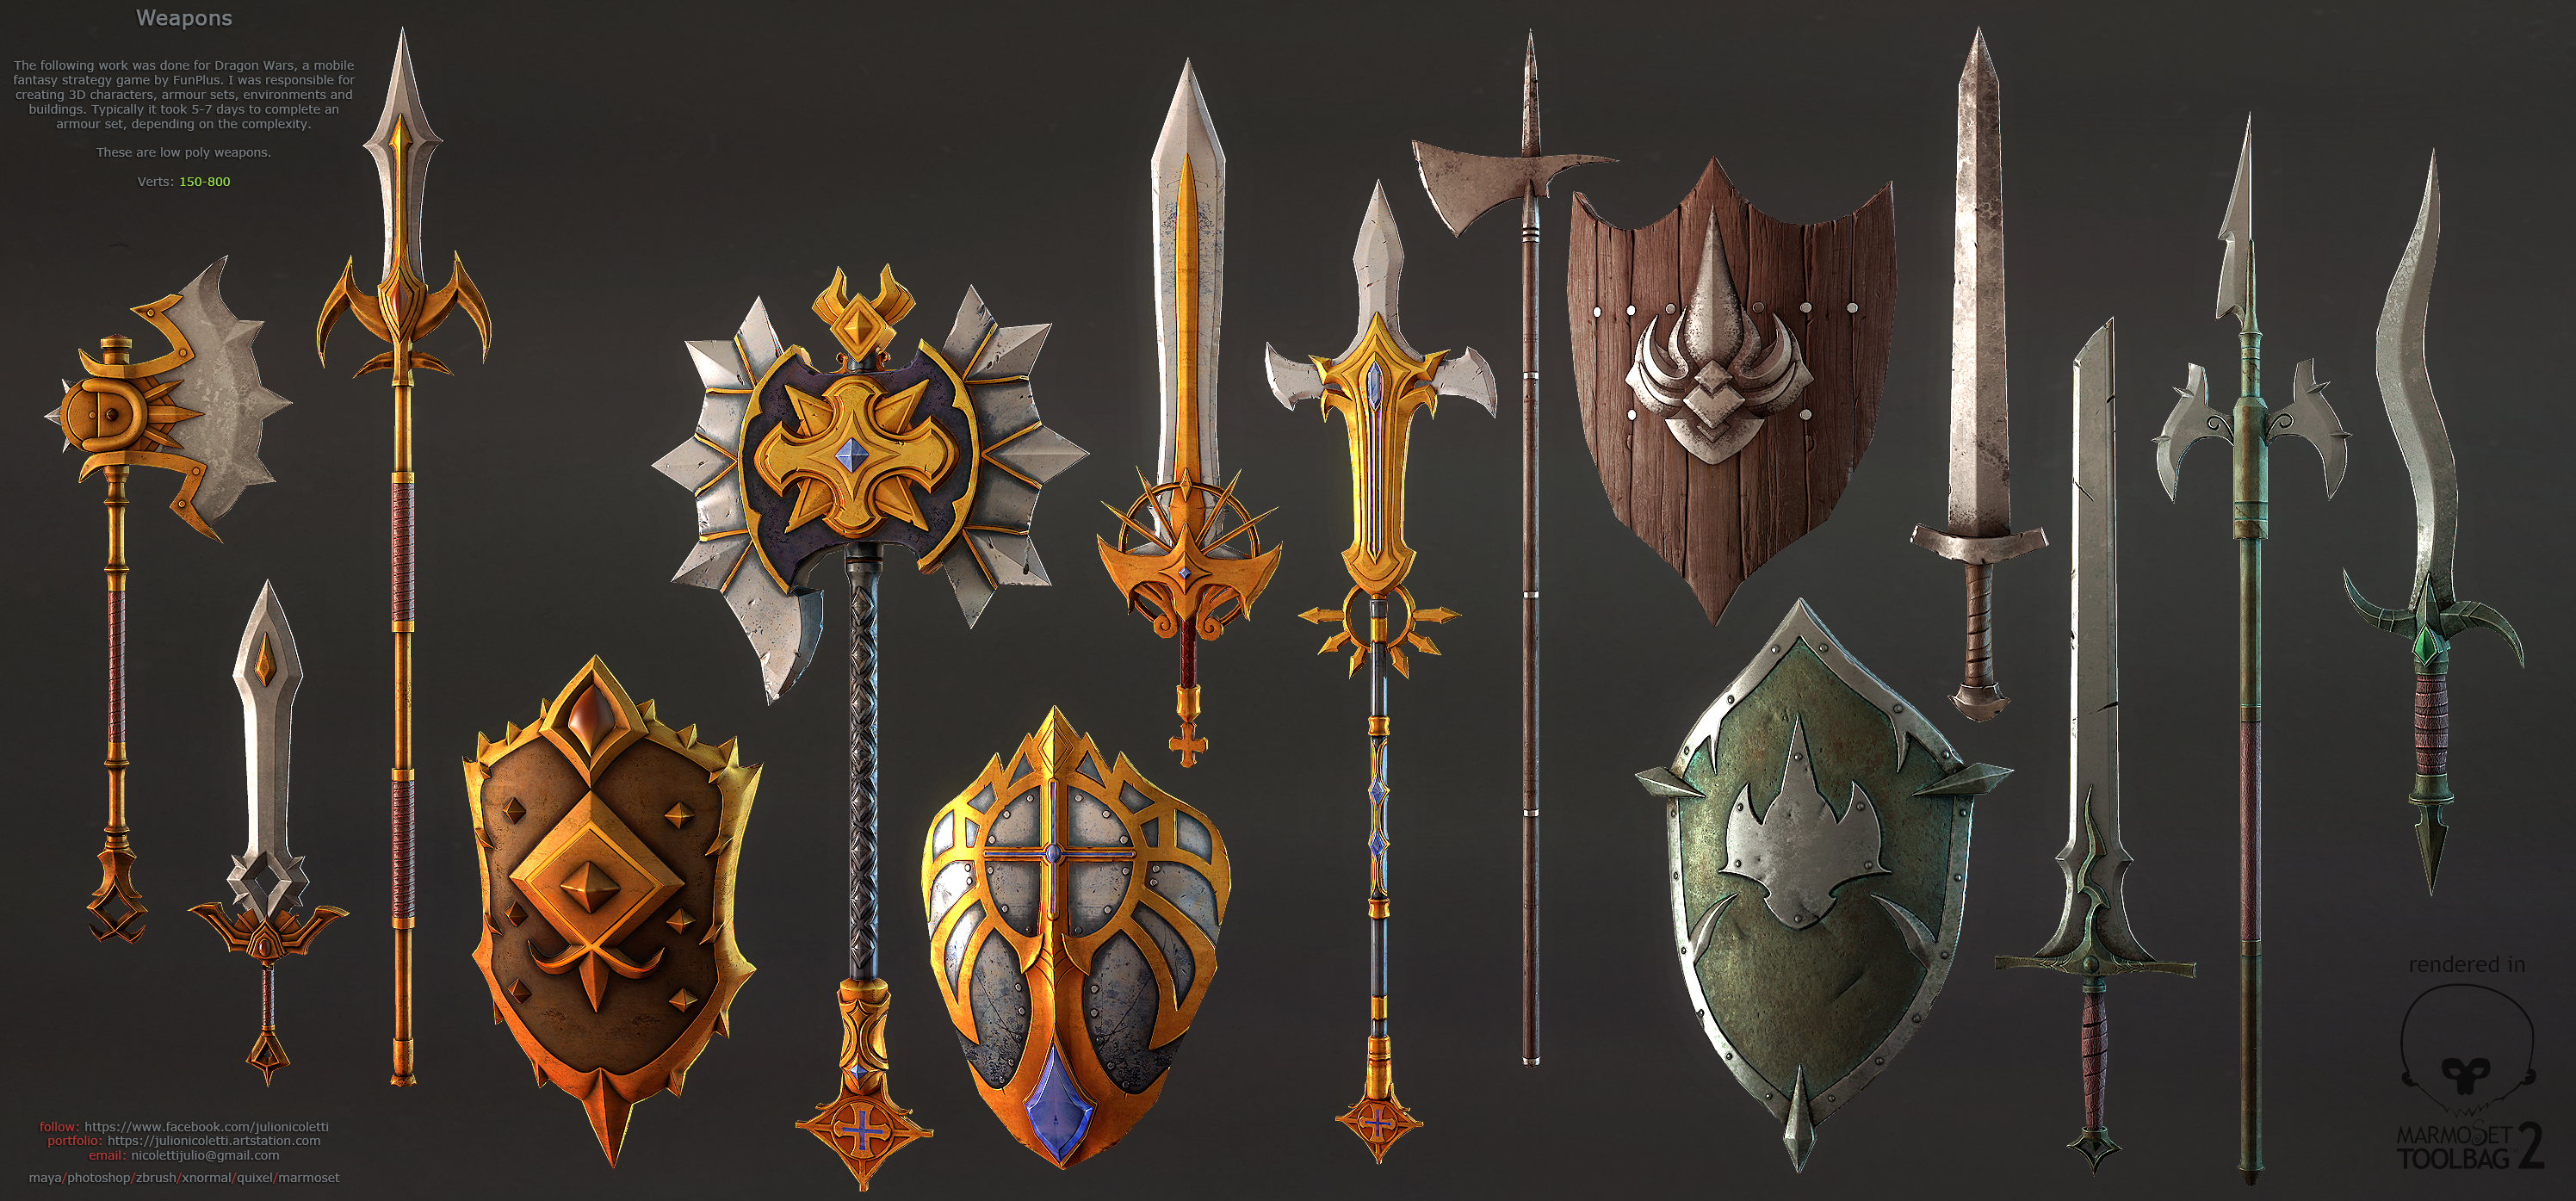 weapons_by_julionicoletti-d942ajz.png